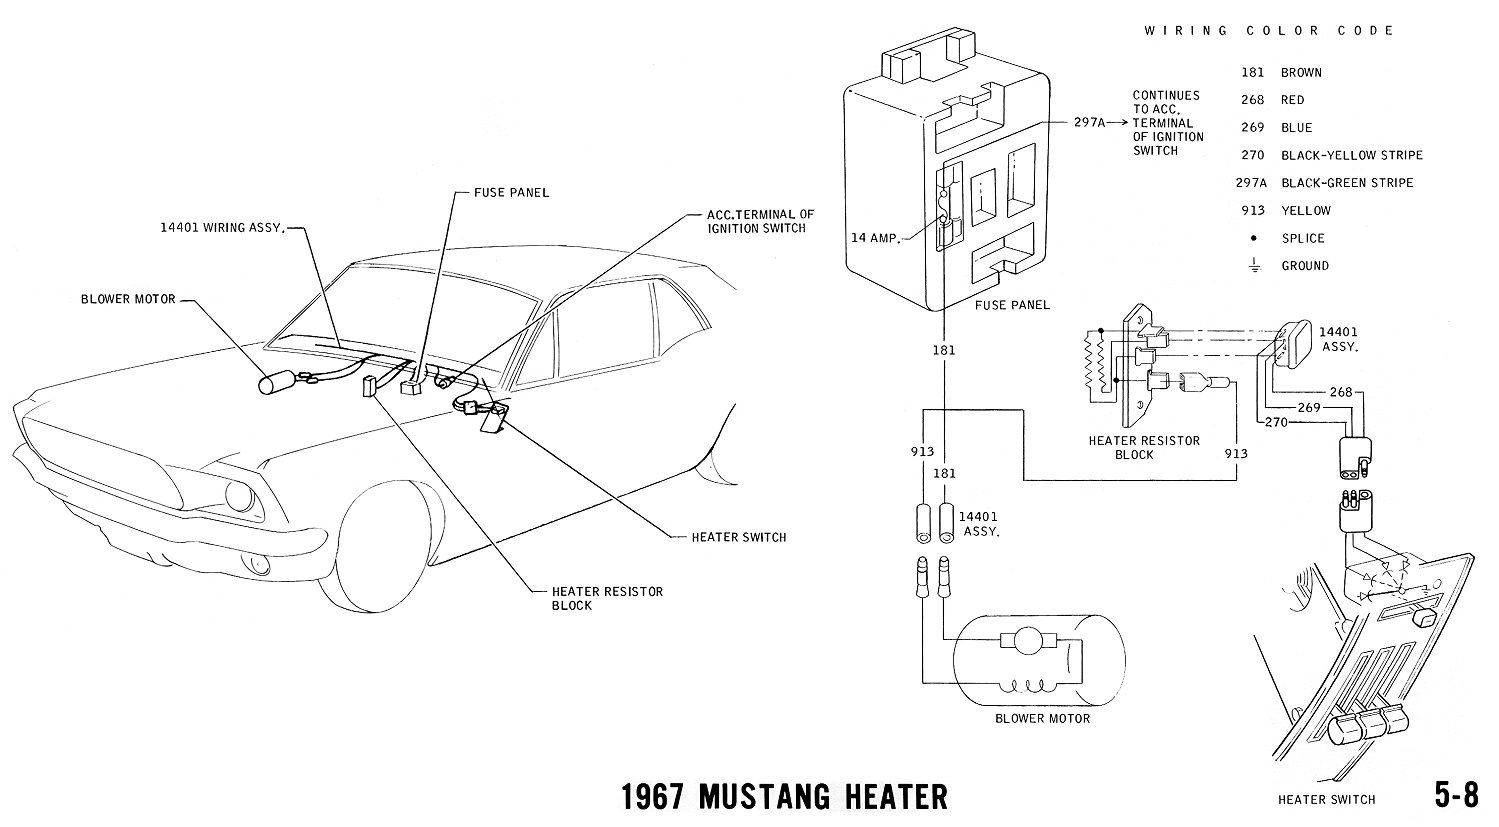 hight resolution of 1967 mustang heater pictorial and schematic